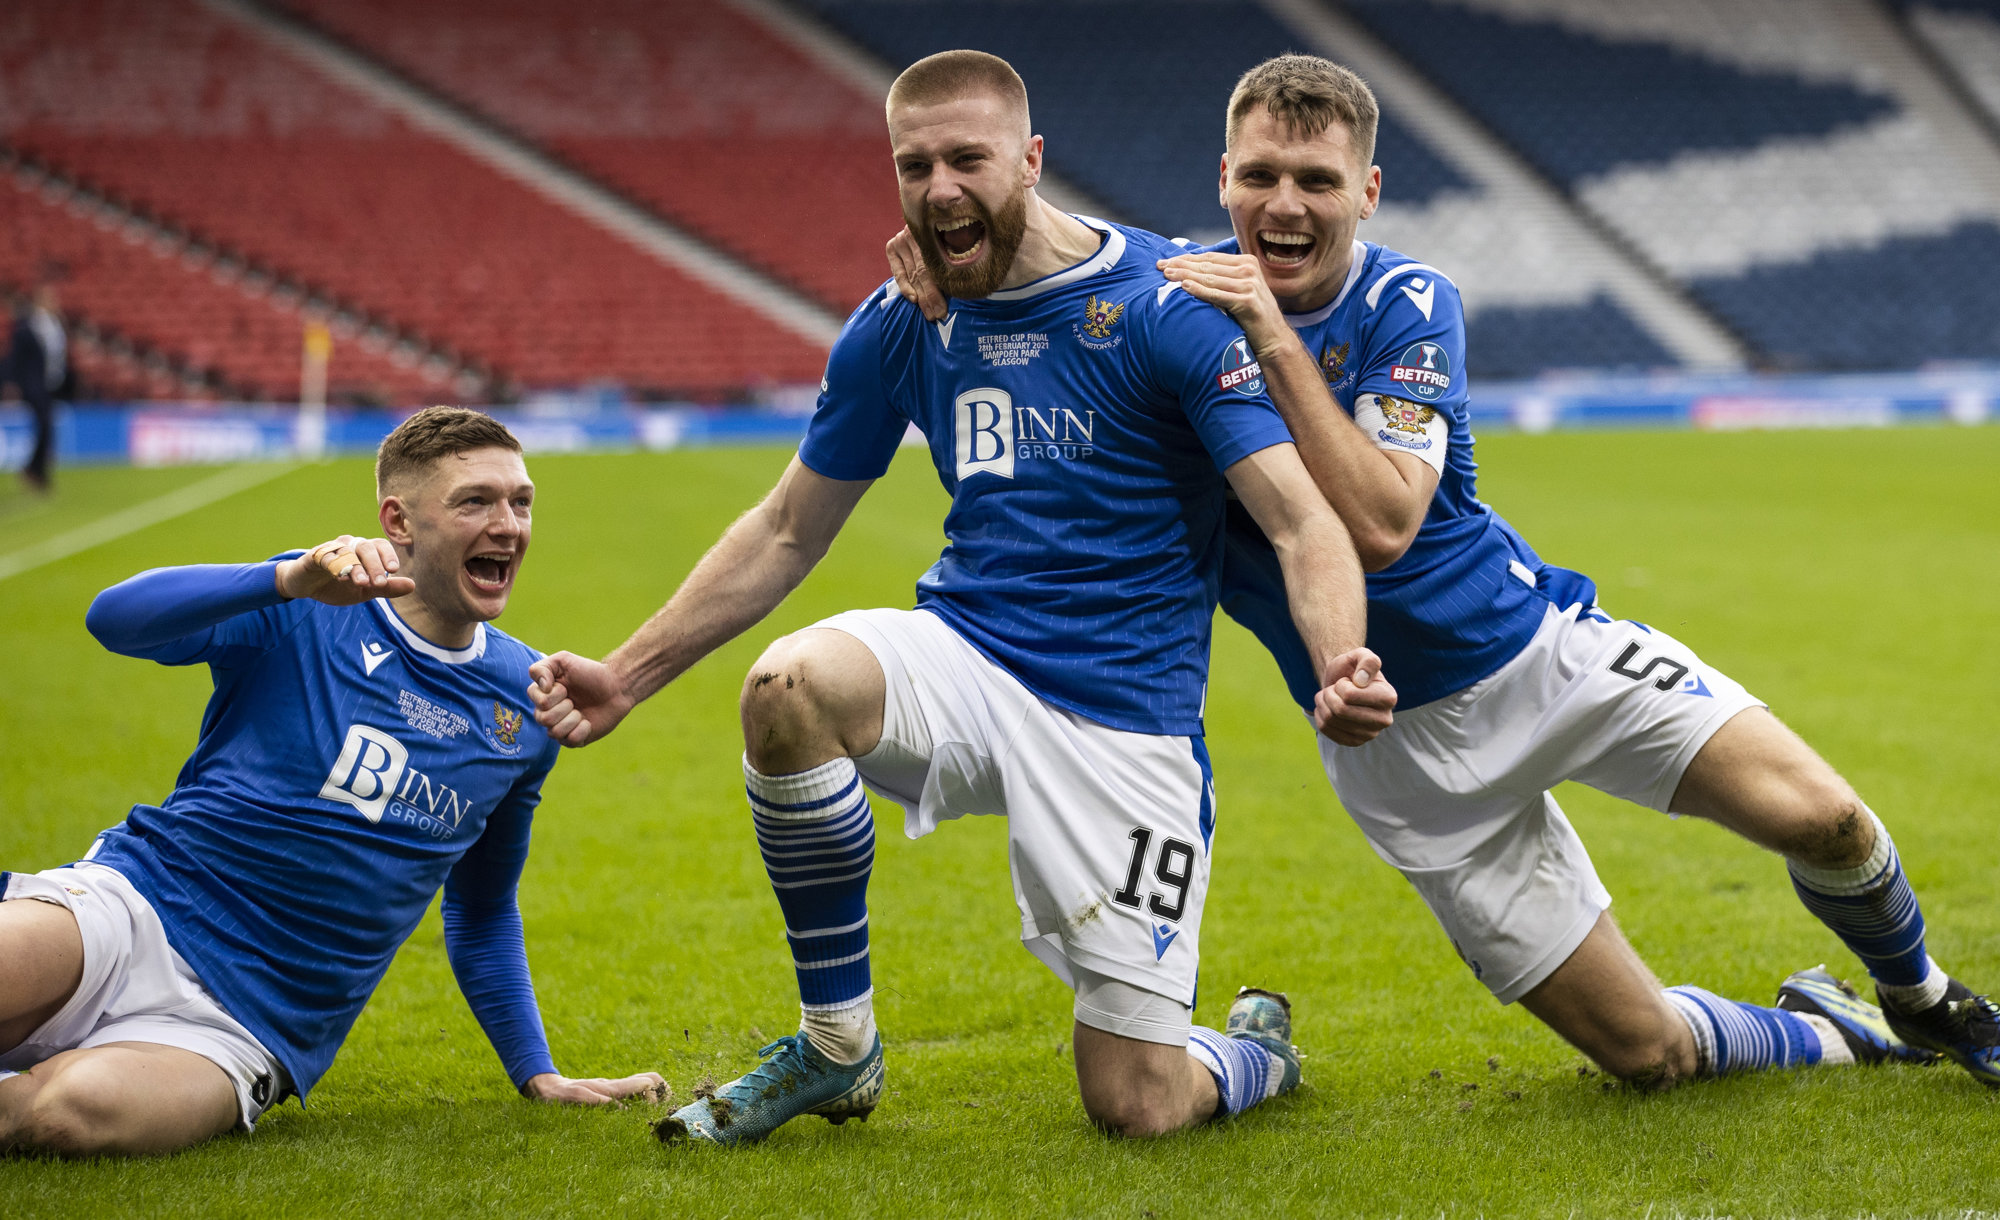 Rooney Nets The Only Goal To Lead St Johnstone To Betfred Cup Glory